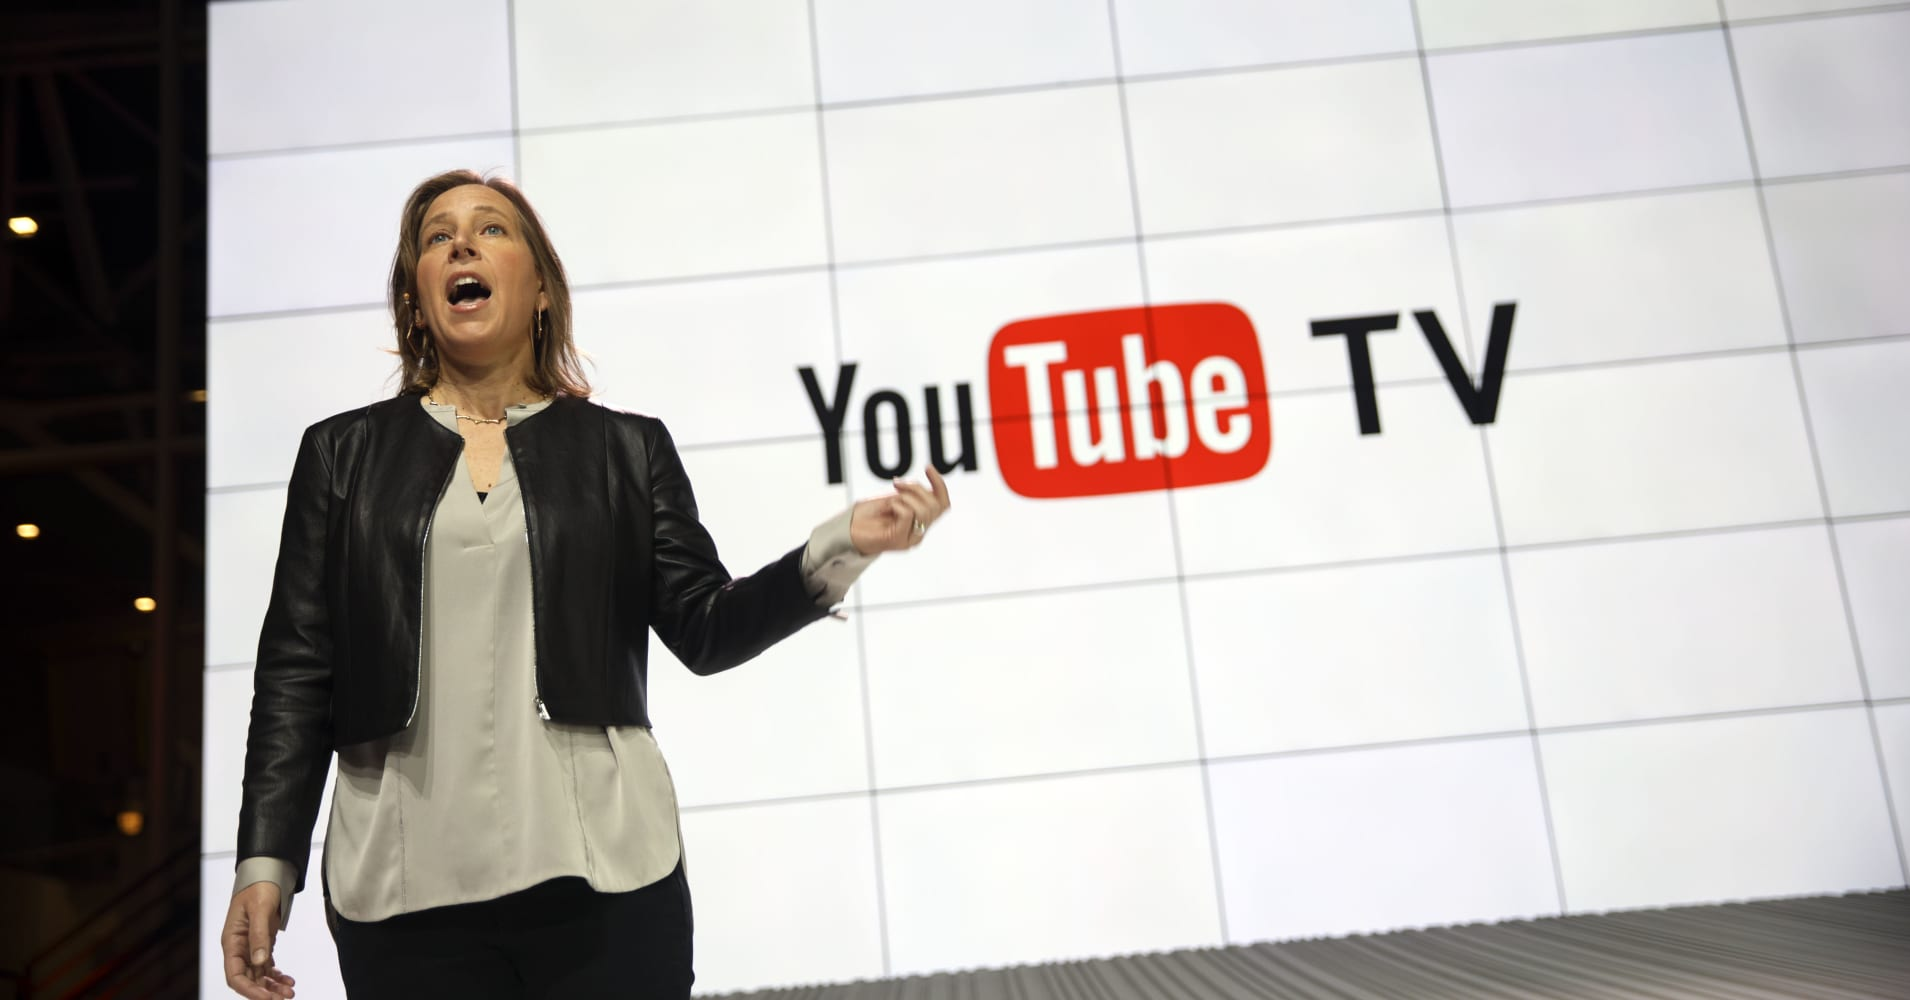 YouTube to pay $170 million in FTC child privacy settlement